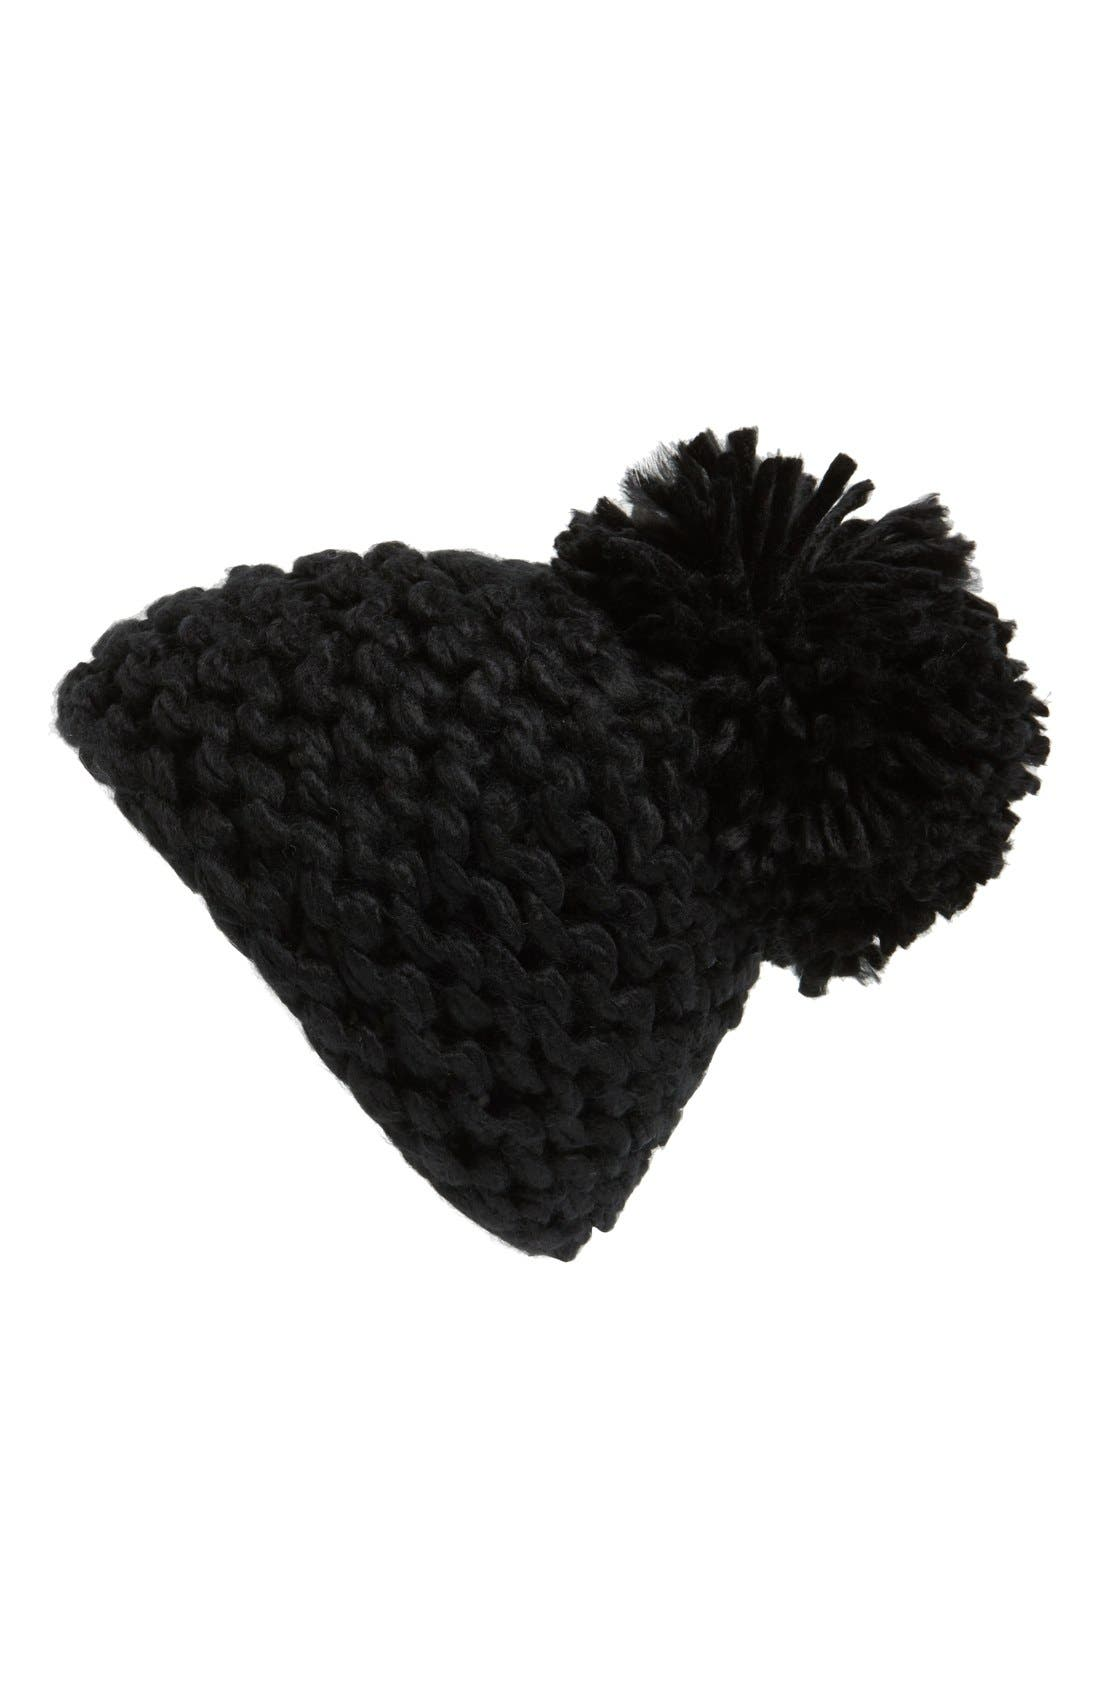 BCBGENERATION, Knit Pompom Beanie, Main thumbnail 1, color, 001